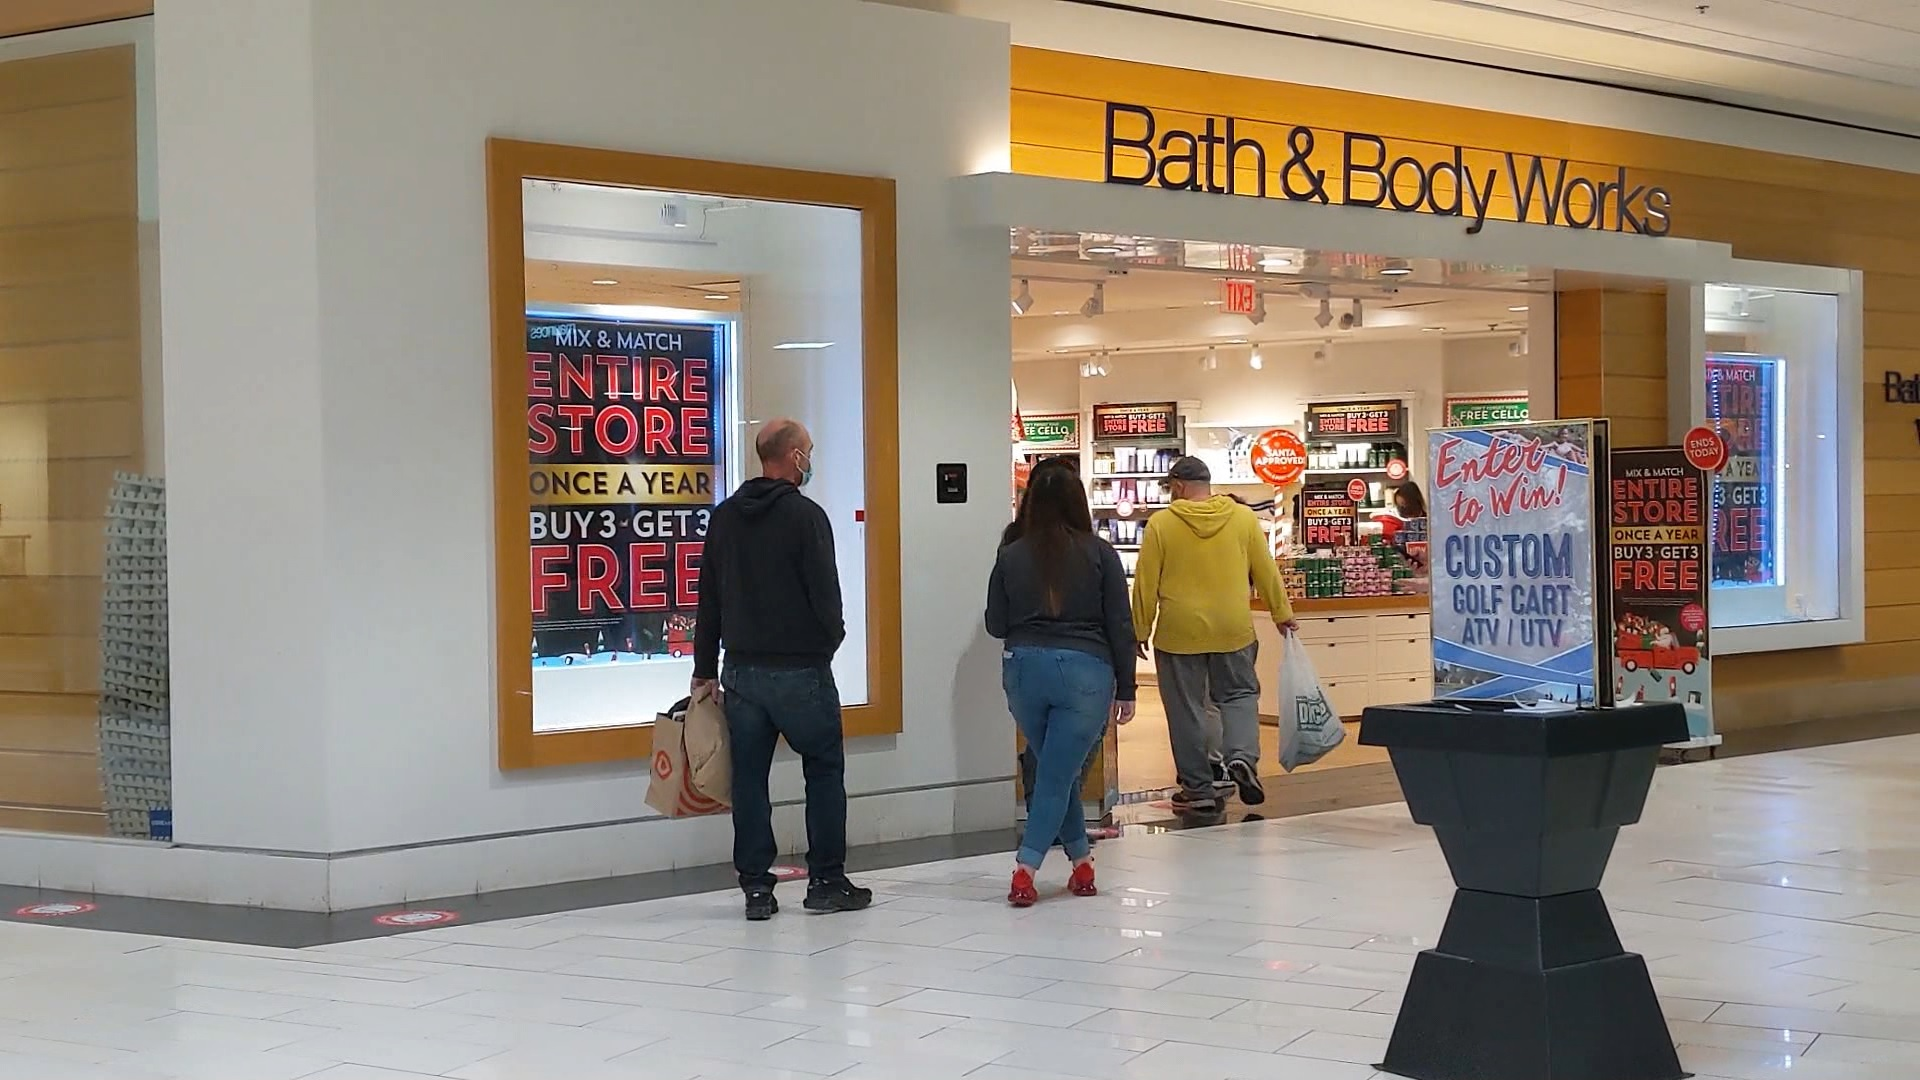 aviation mall black friday bath & body works